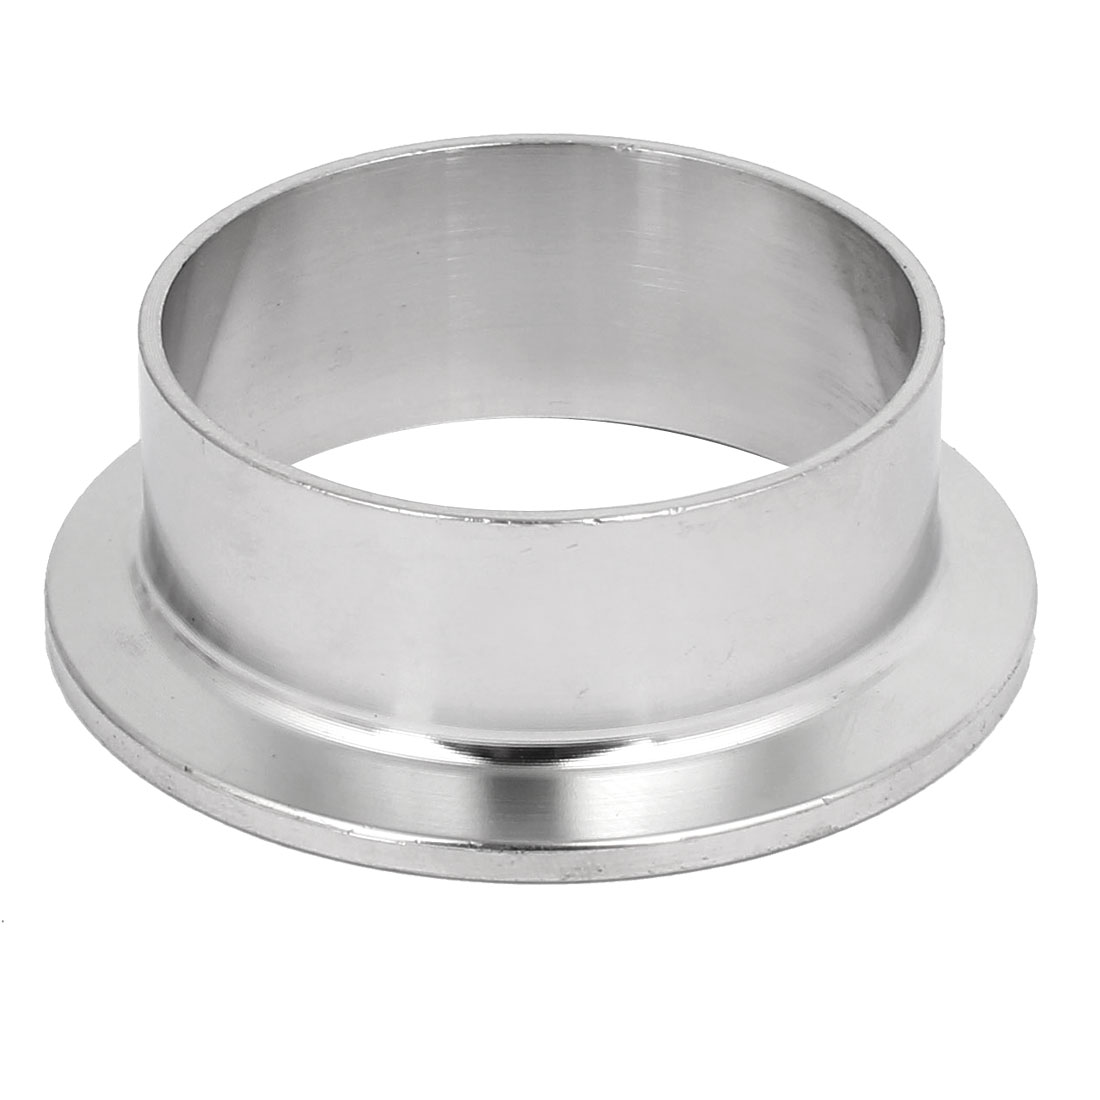 304 Stainless Steel 51mm OD Sanitary Pipe Weld on Ferrule Fits 2 Tri Clamp 273mm od sanitary weld on 286mm ferrule tri clamp stainless steel welding pipe fitting ss304 sw 273 page 6